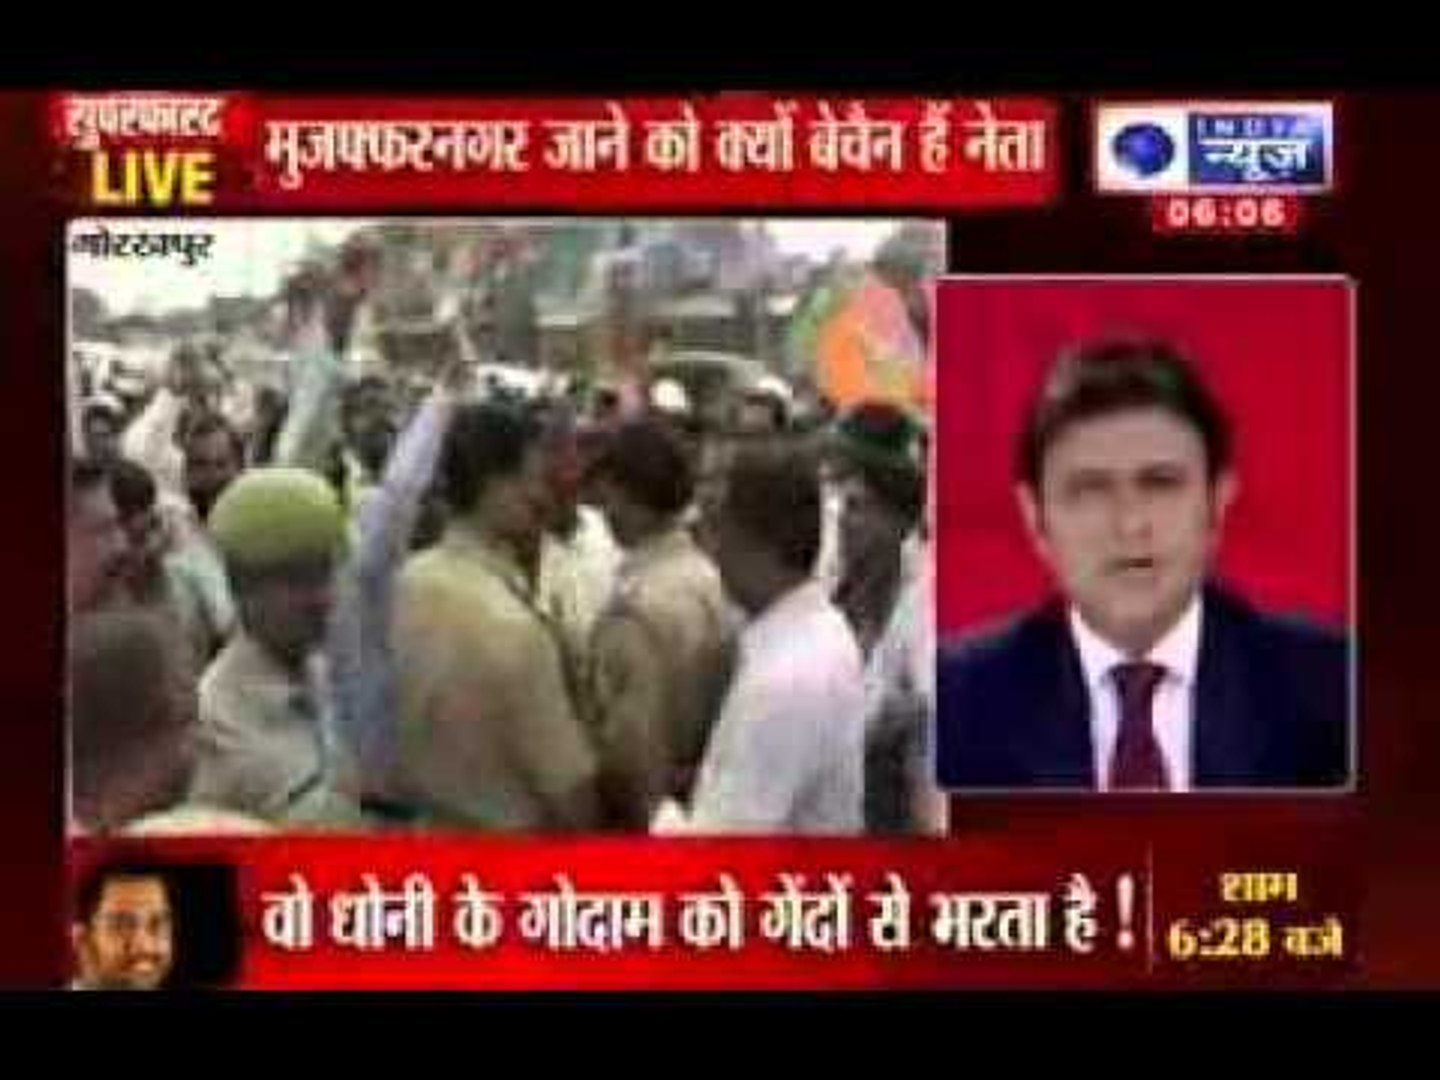 India News: Superfast 100 News on 12th September 2013